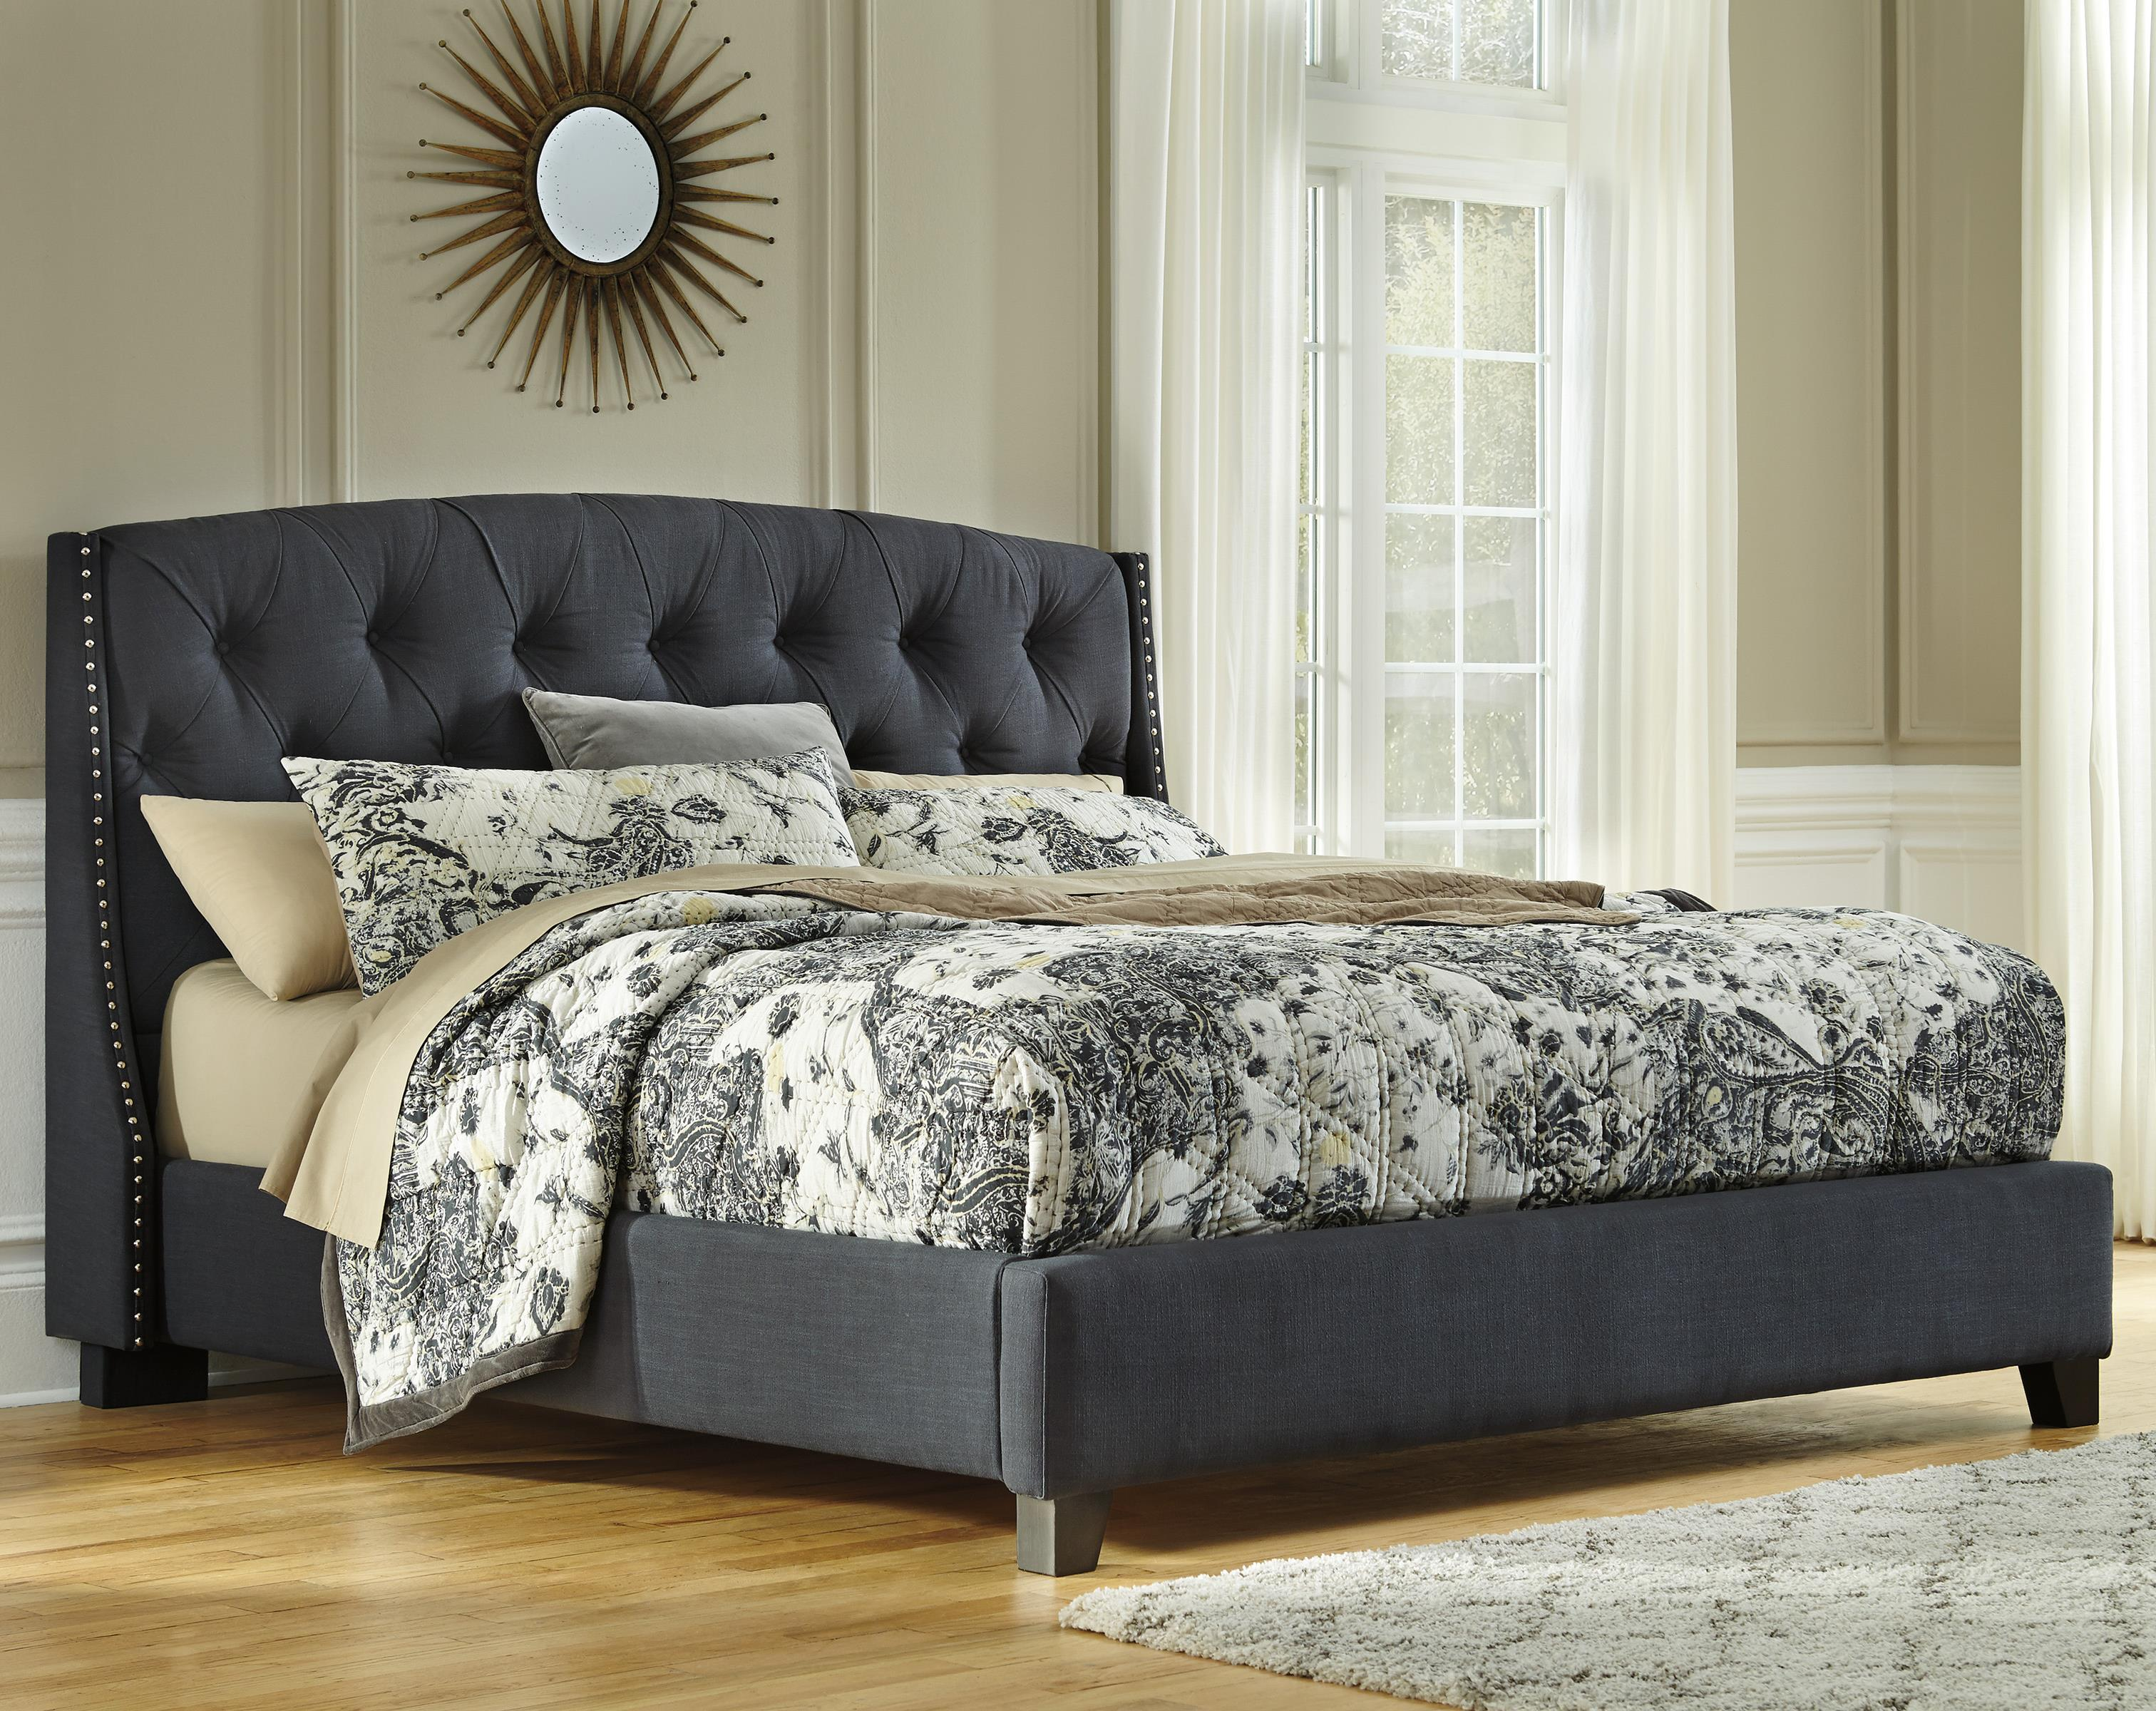 Signature Design by Ashley Kasidon California King Upholstered Bed - Item Number: B600-558+556+594